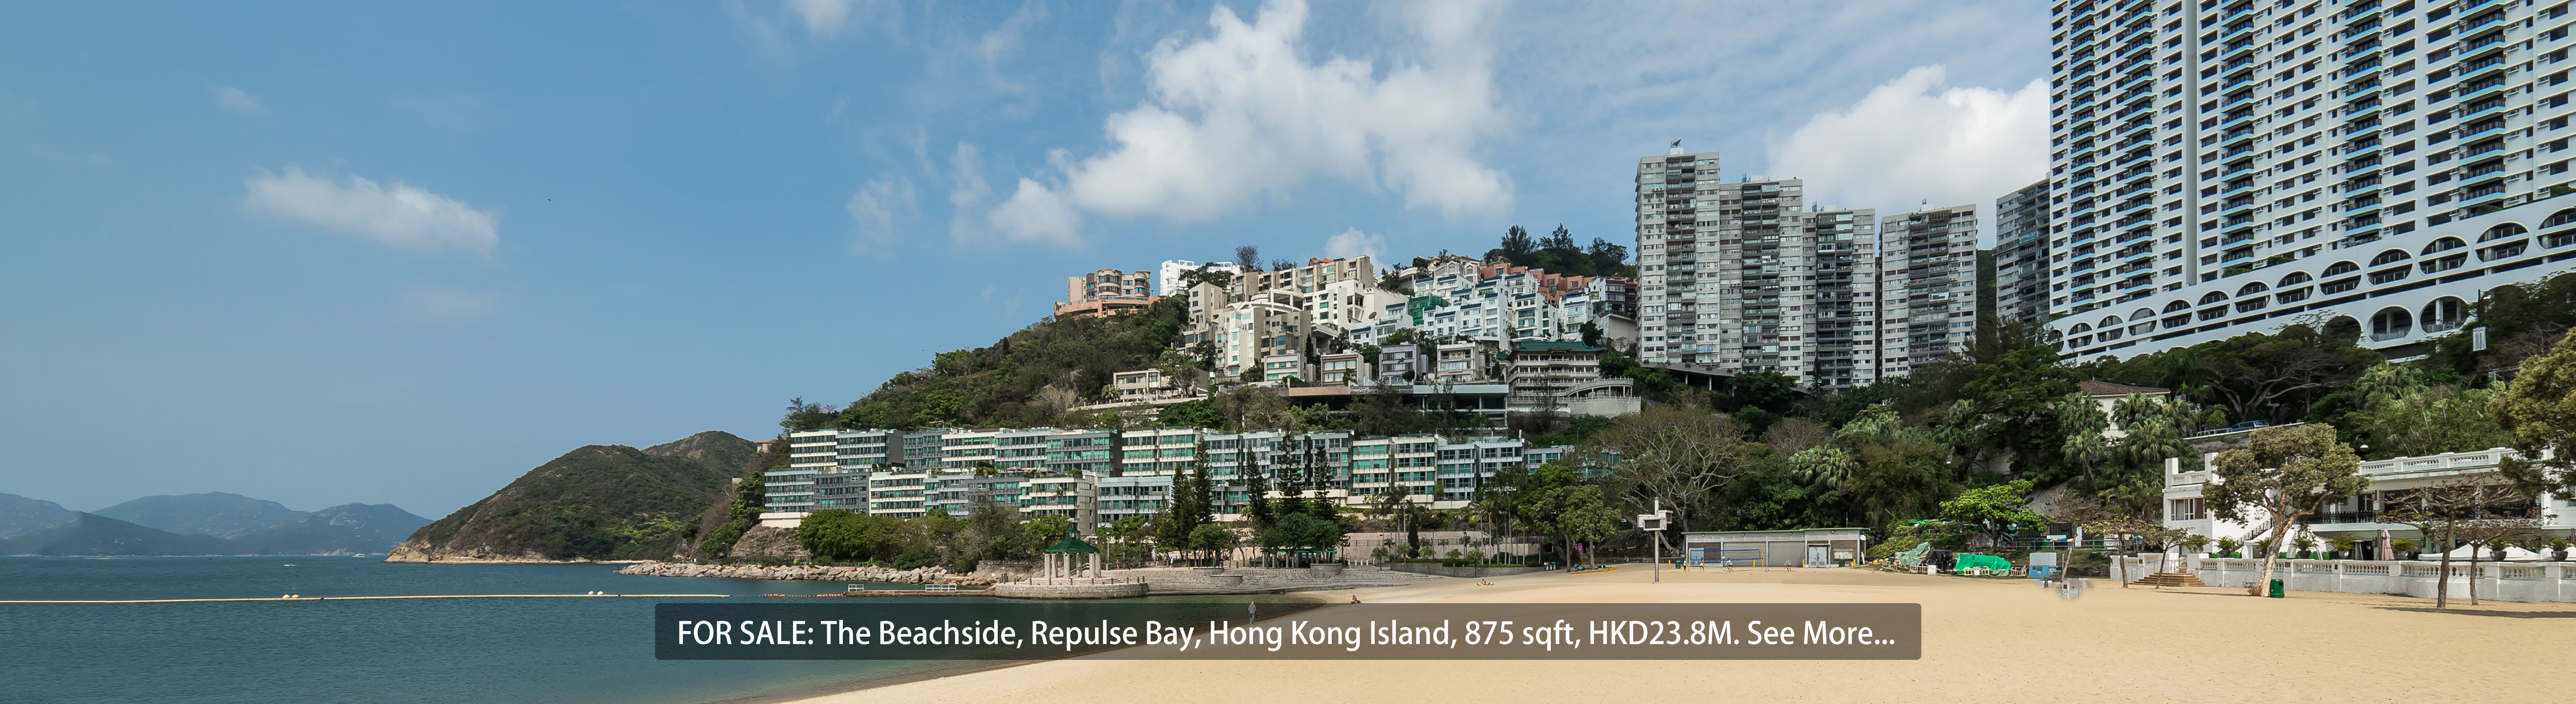 Hong Kong - The Beachside